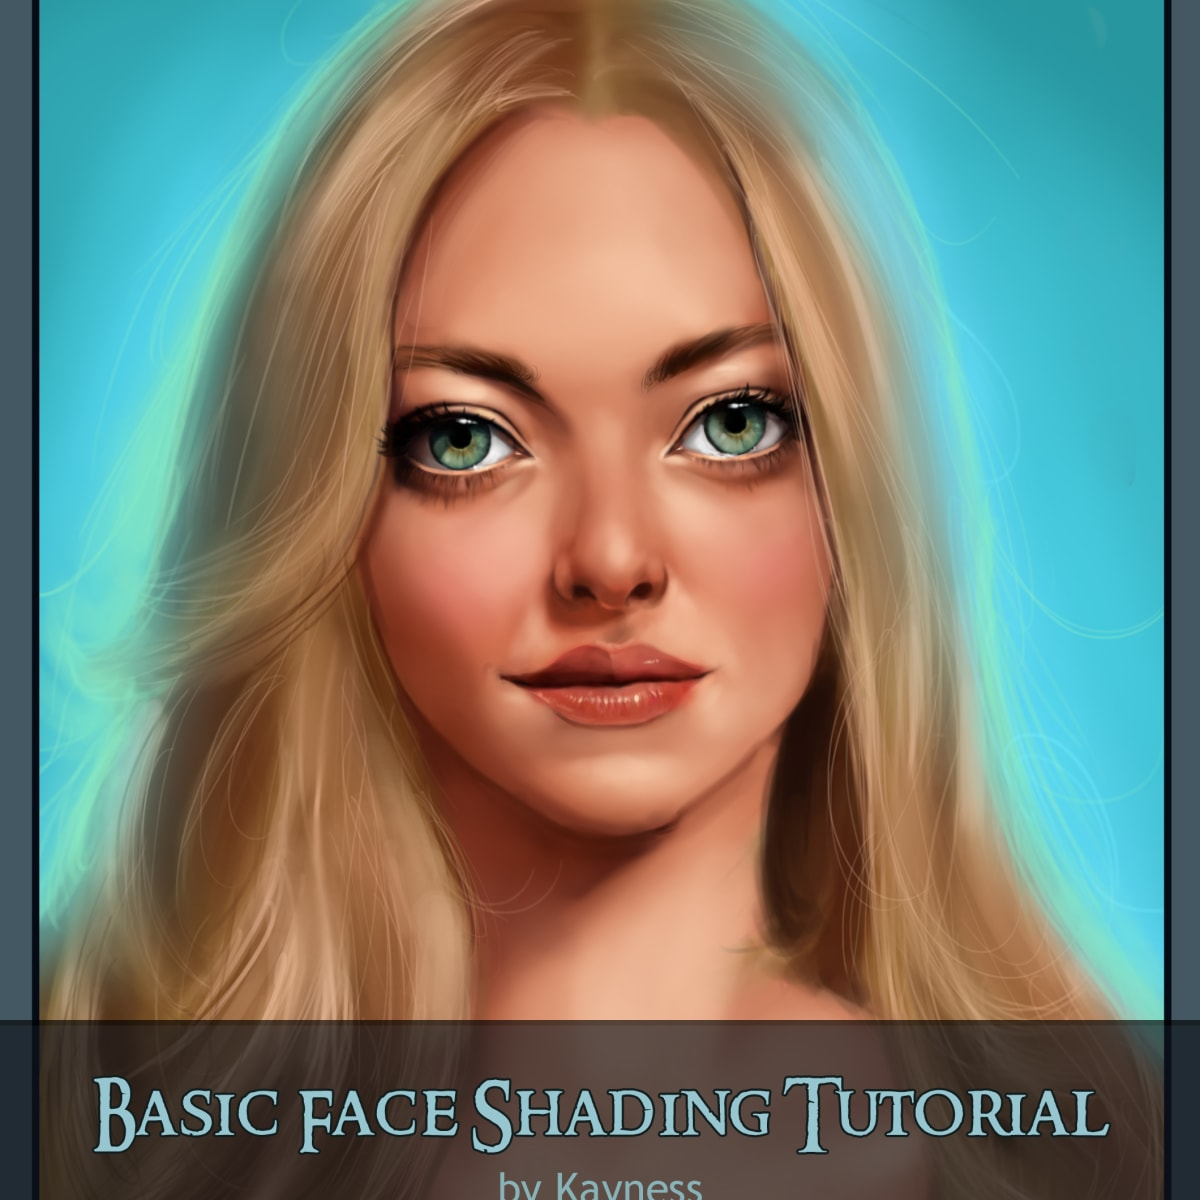 How To Create Beautiful Realistic Face Shading Using Digital Art Programs Hubpages